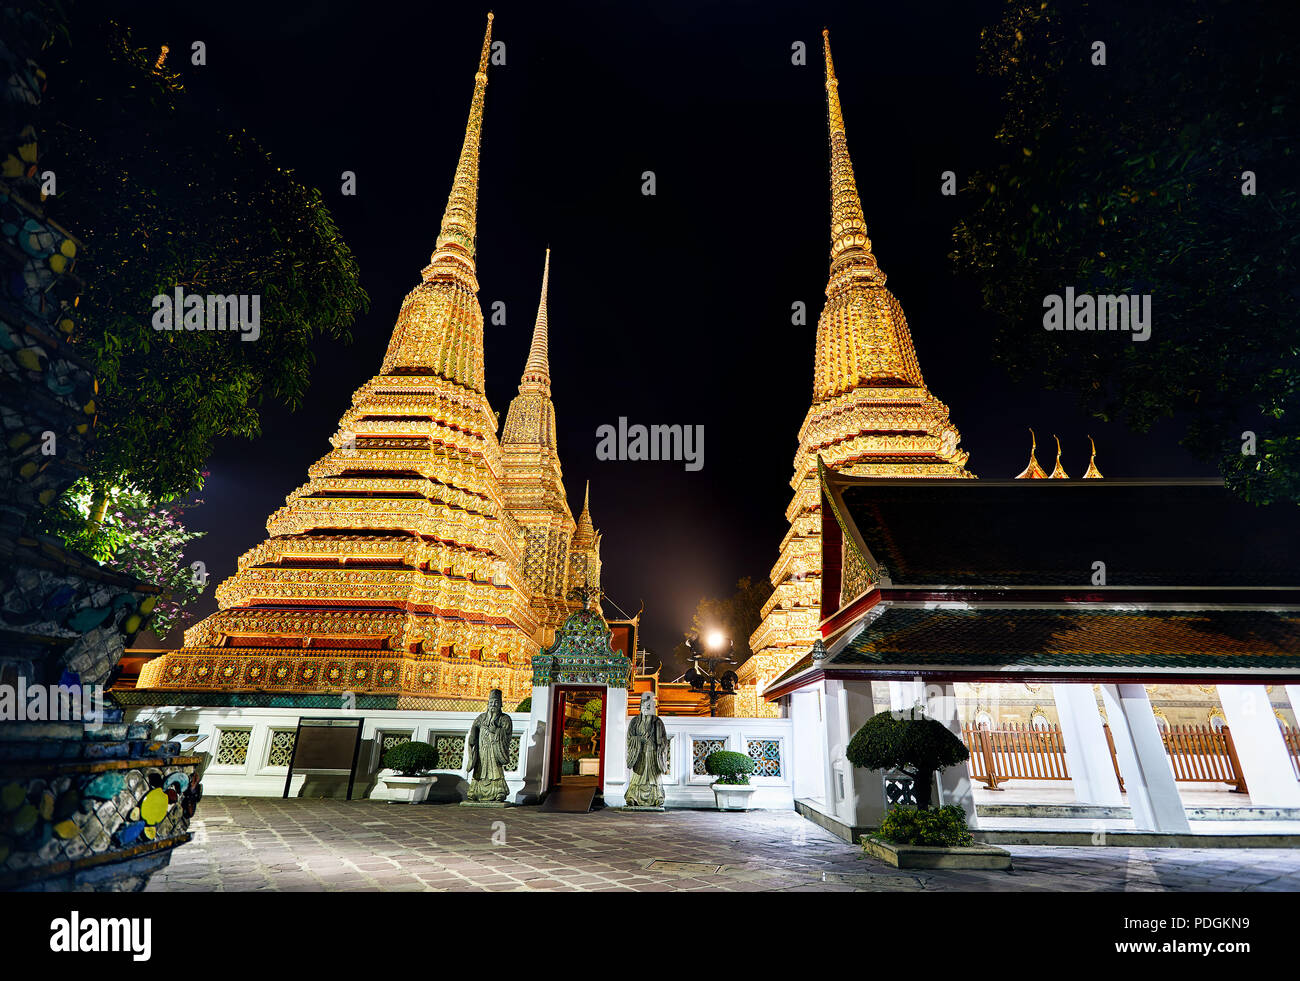 Buddhist Temple Wat Pho with golden Chedi in Bangkok at night sky in Thailand. Famous landmark and sight of the city. Stock Photo